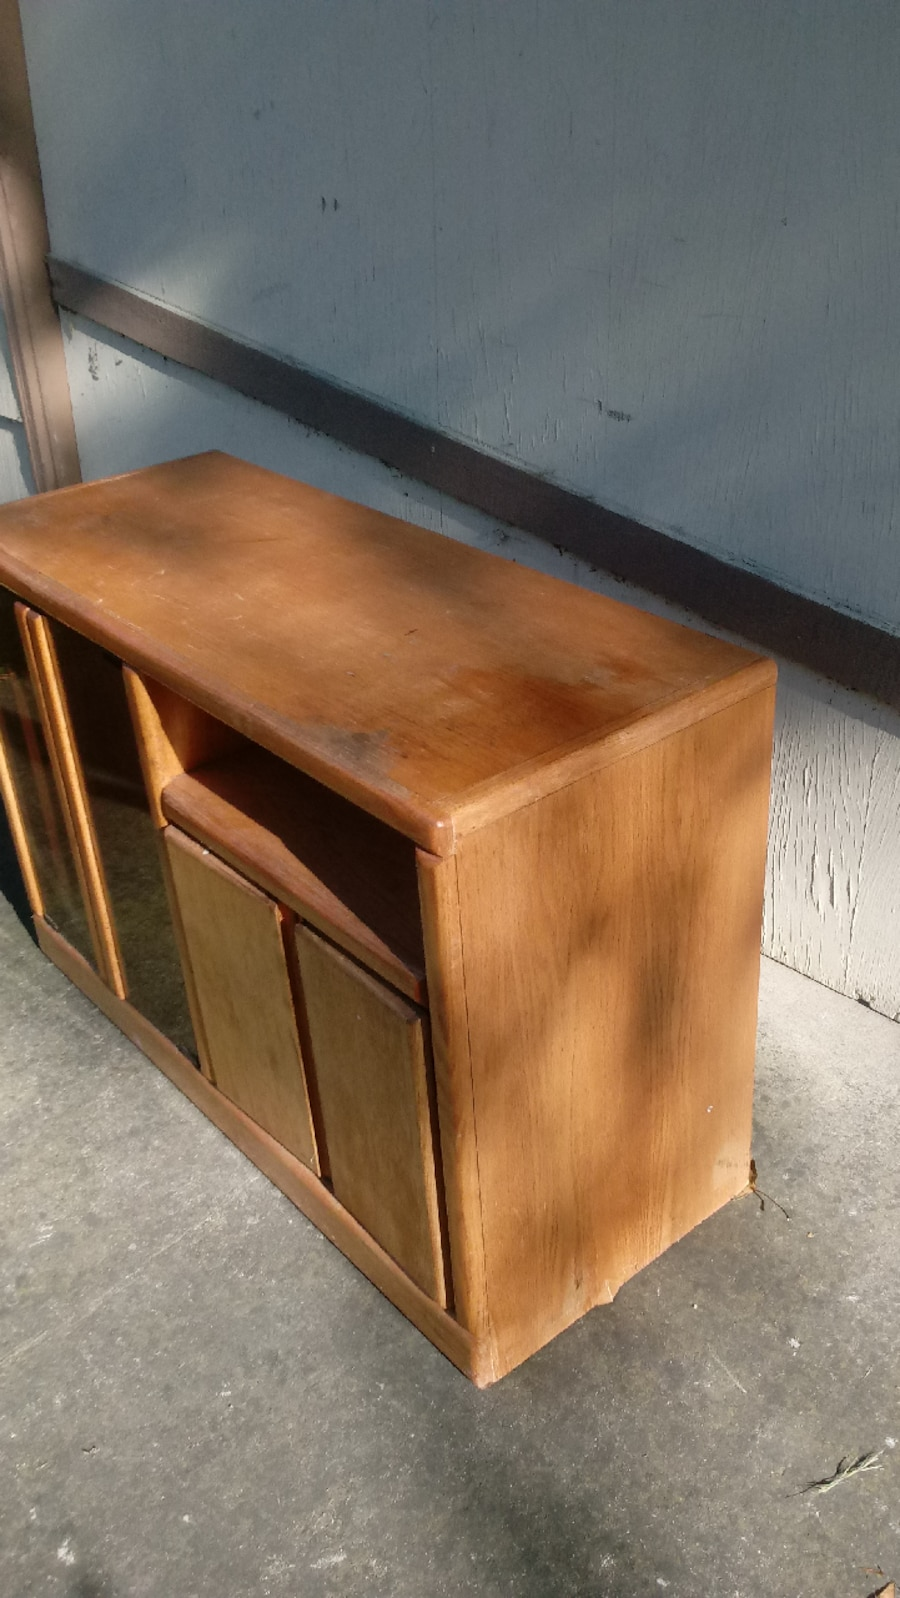 Wood cabinet glass table computer desk cd case - CA